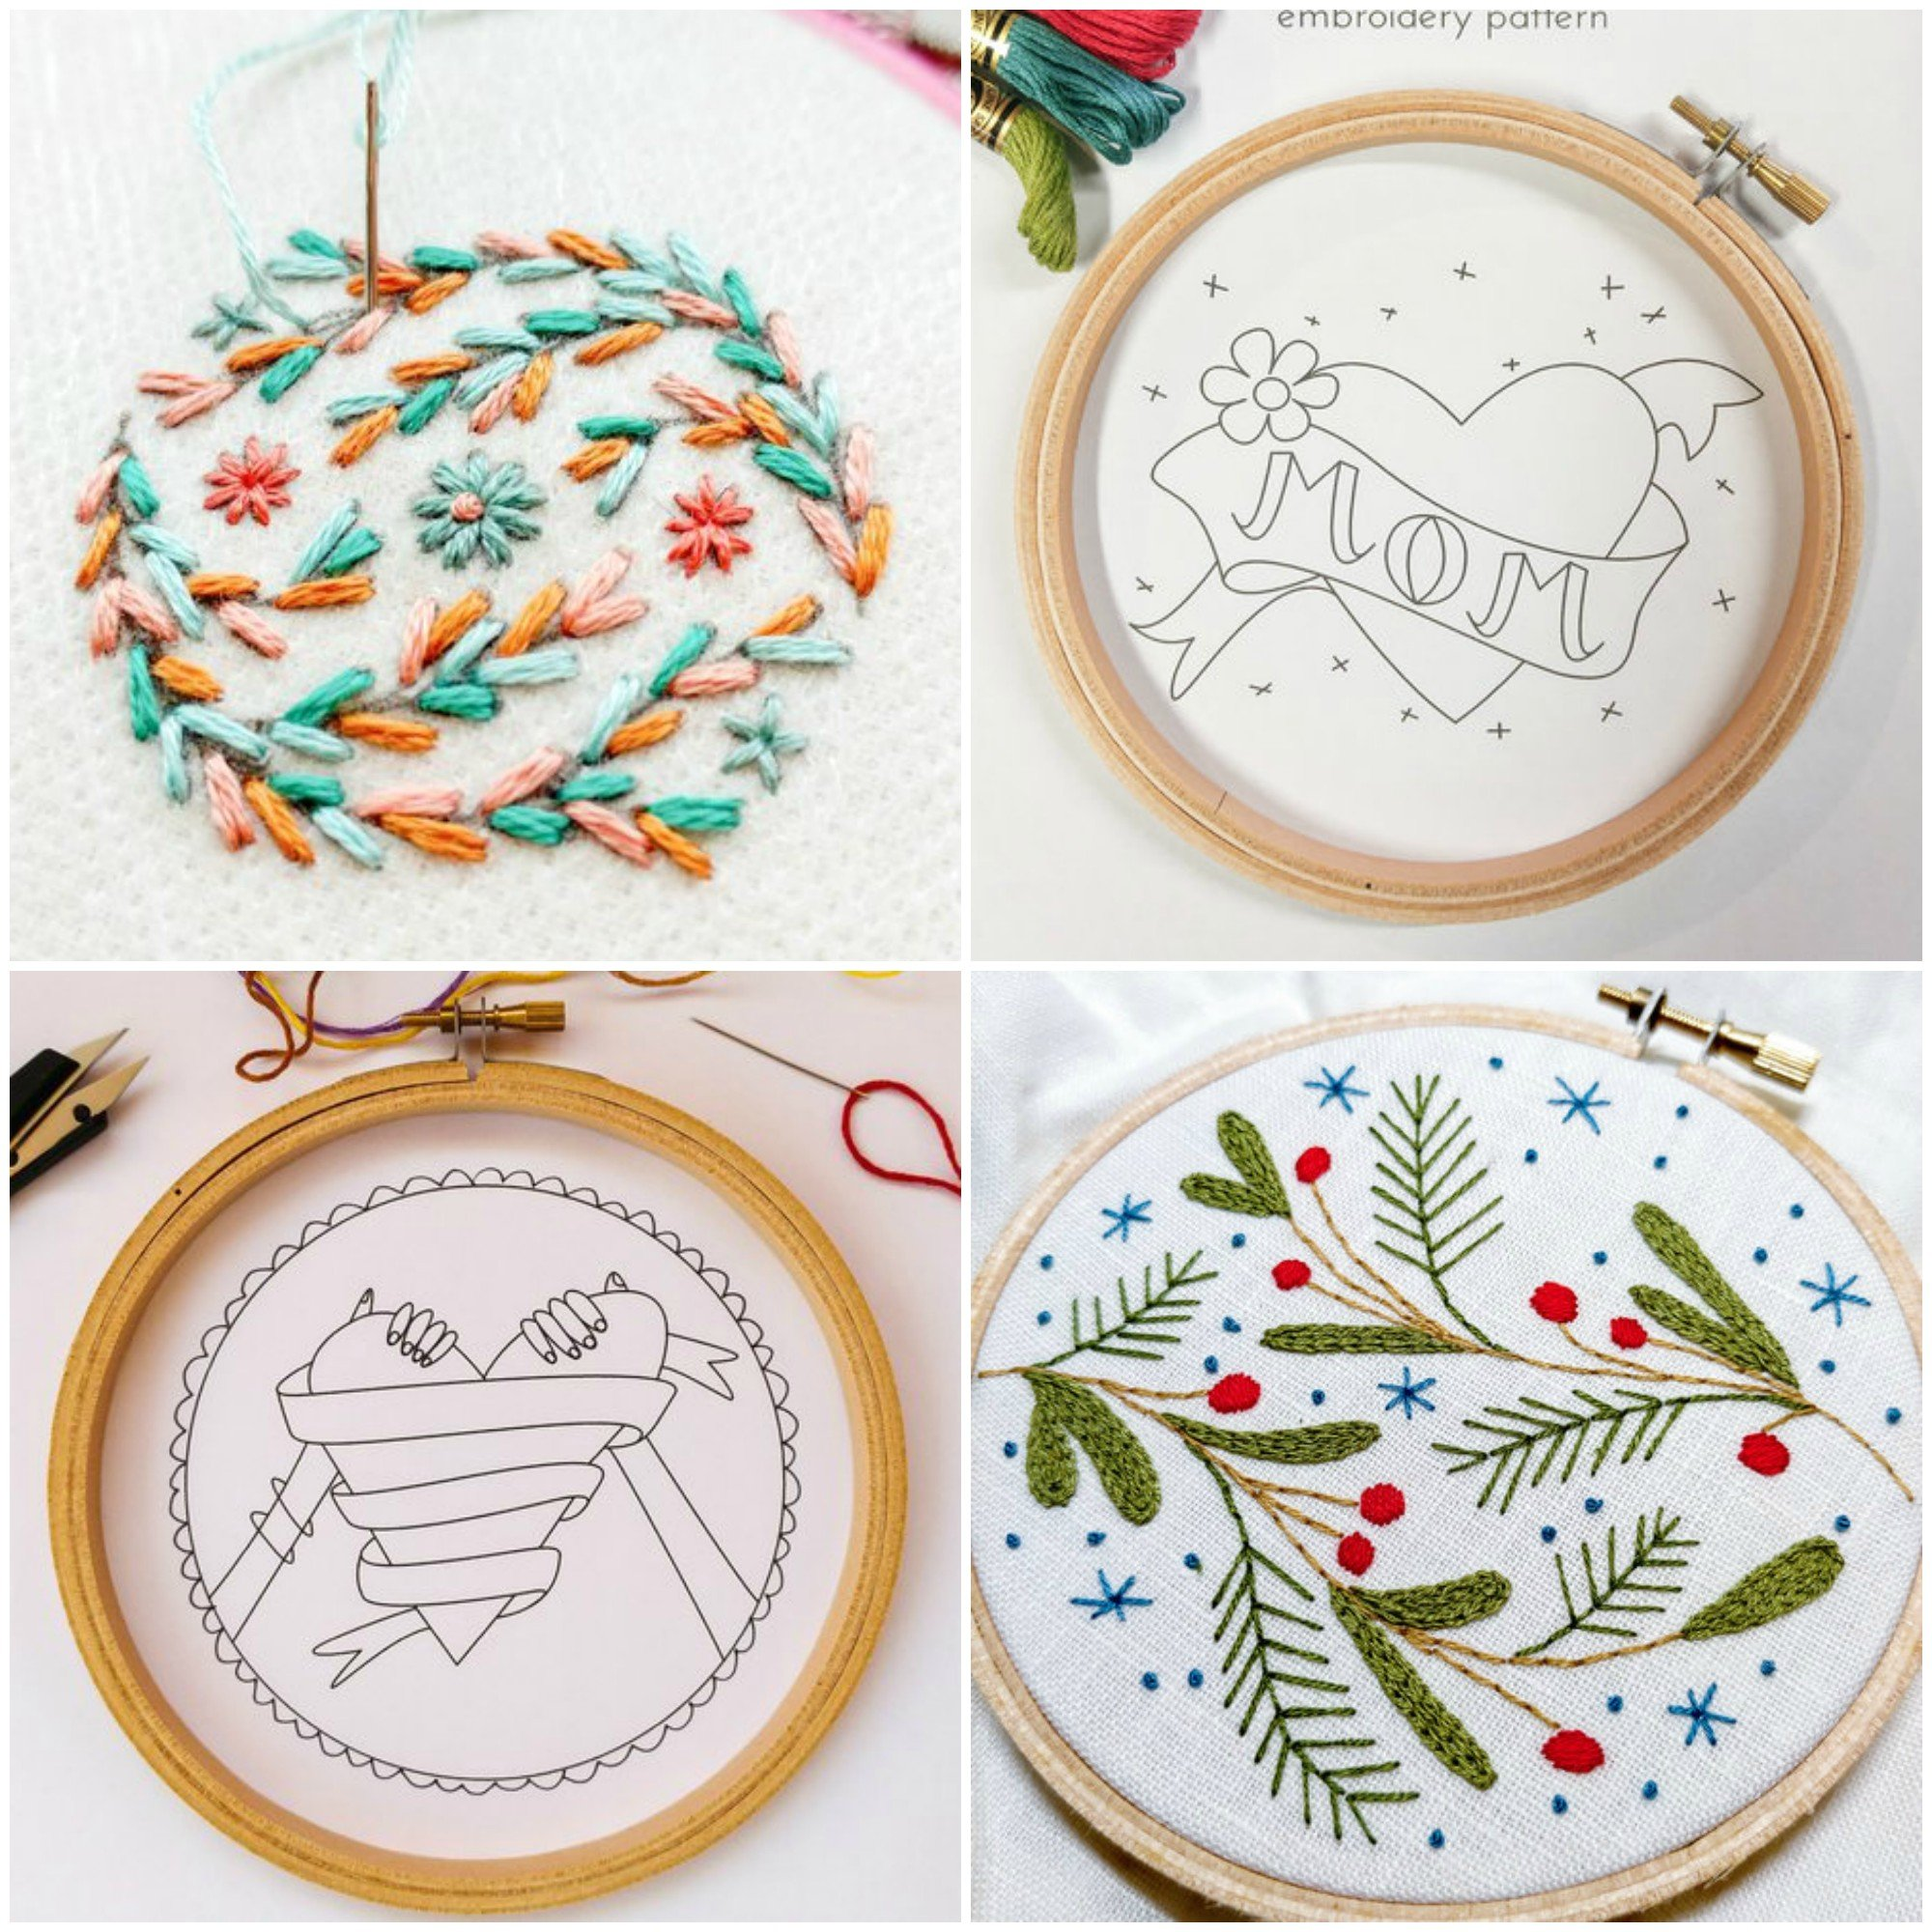 Pretty free embroidery patterns for download